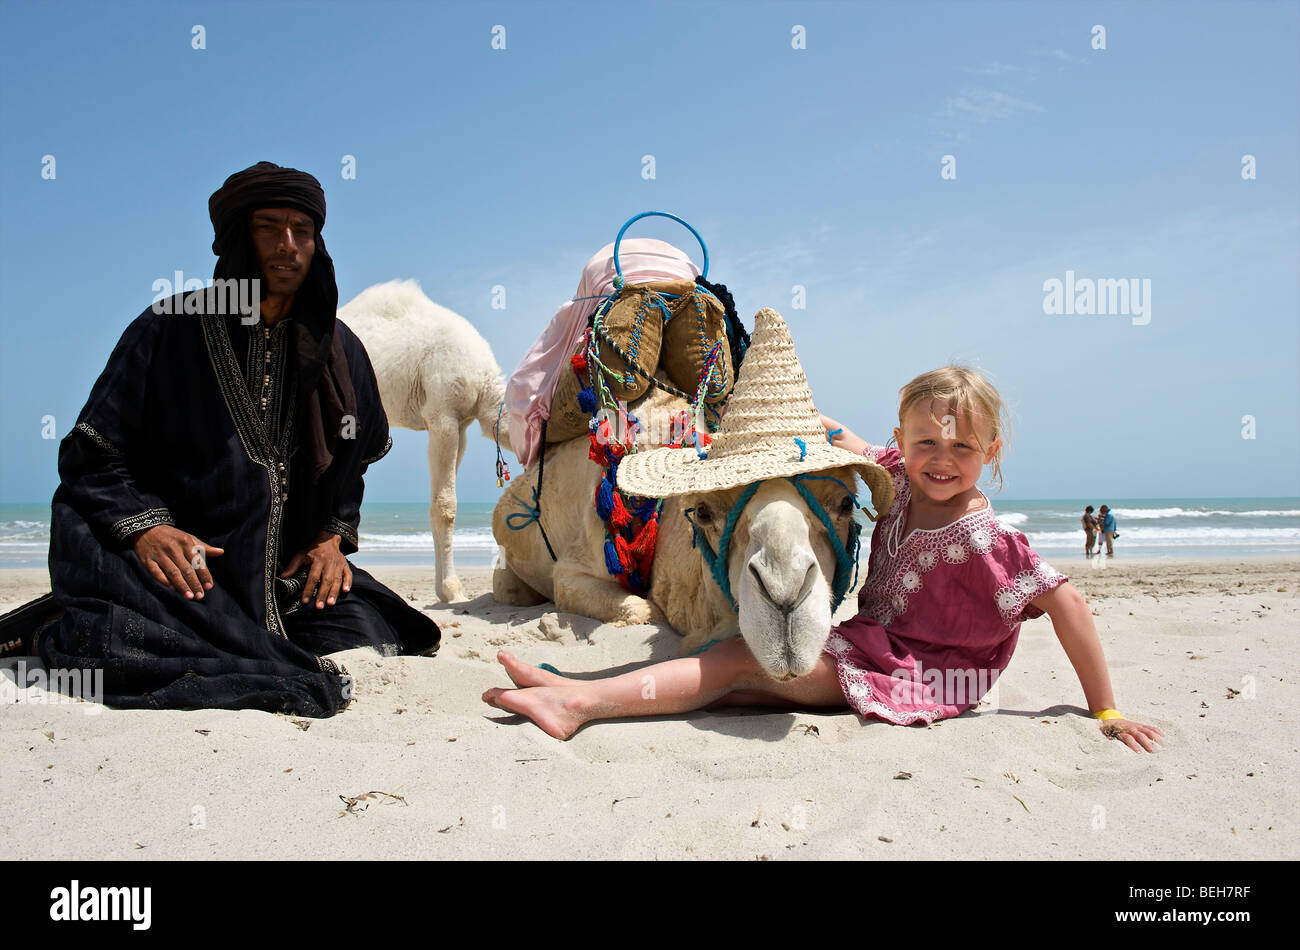 Tunesia, Djerba, Midoun, girl posing for photo together with a camel - Stock Image